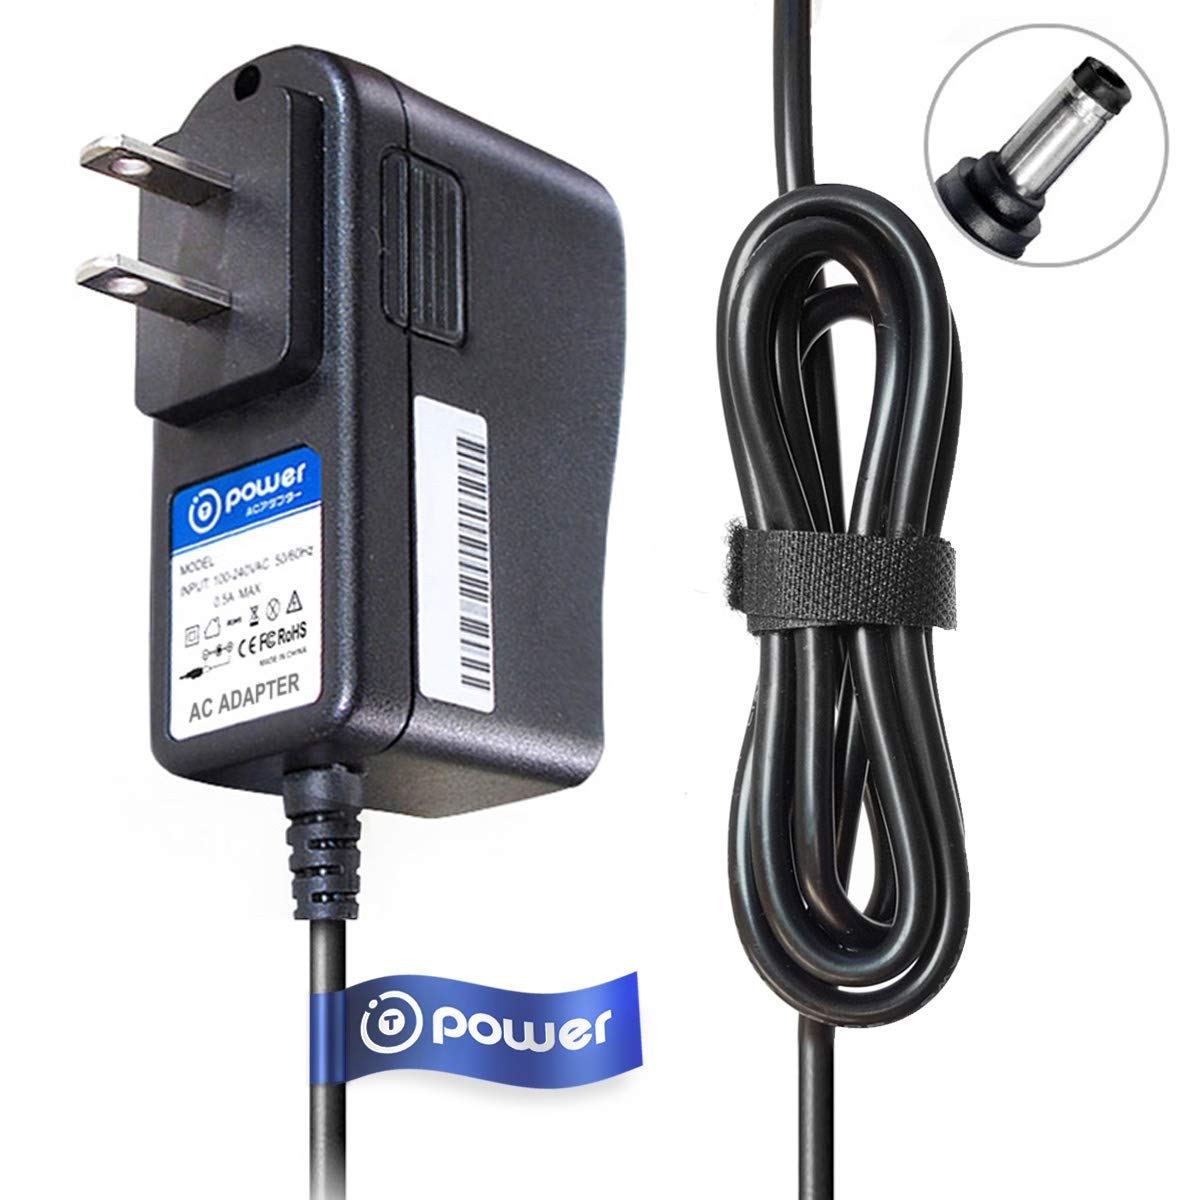 T POWER 9V Ac Dc Adapter Charger for Schwinn Elliptical Exercise Bike A10 A15 A20 A25 A40 101 102 103 430 420 270 240 230 220 245 250 Power Supply